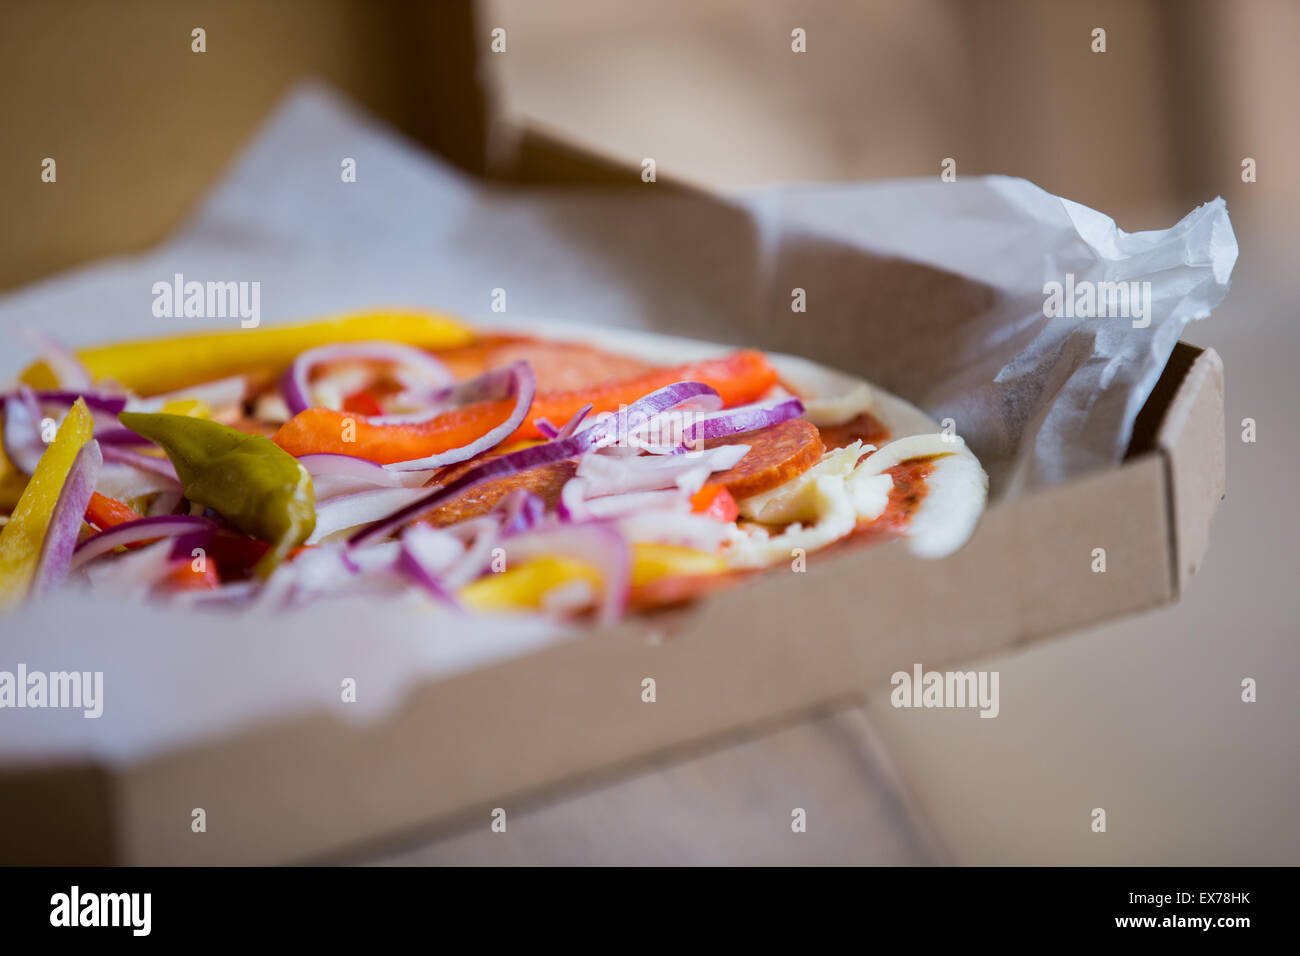 Bonn germany 7th july 2015 a raw pizza is put into the oven at bonn germany 7th july 2015 a raw pizza is put into the oven at the vapiano headquaters in bonn germany 7 july 2015 the restaurant chain hopes in the sciox Images